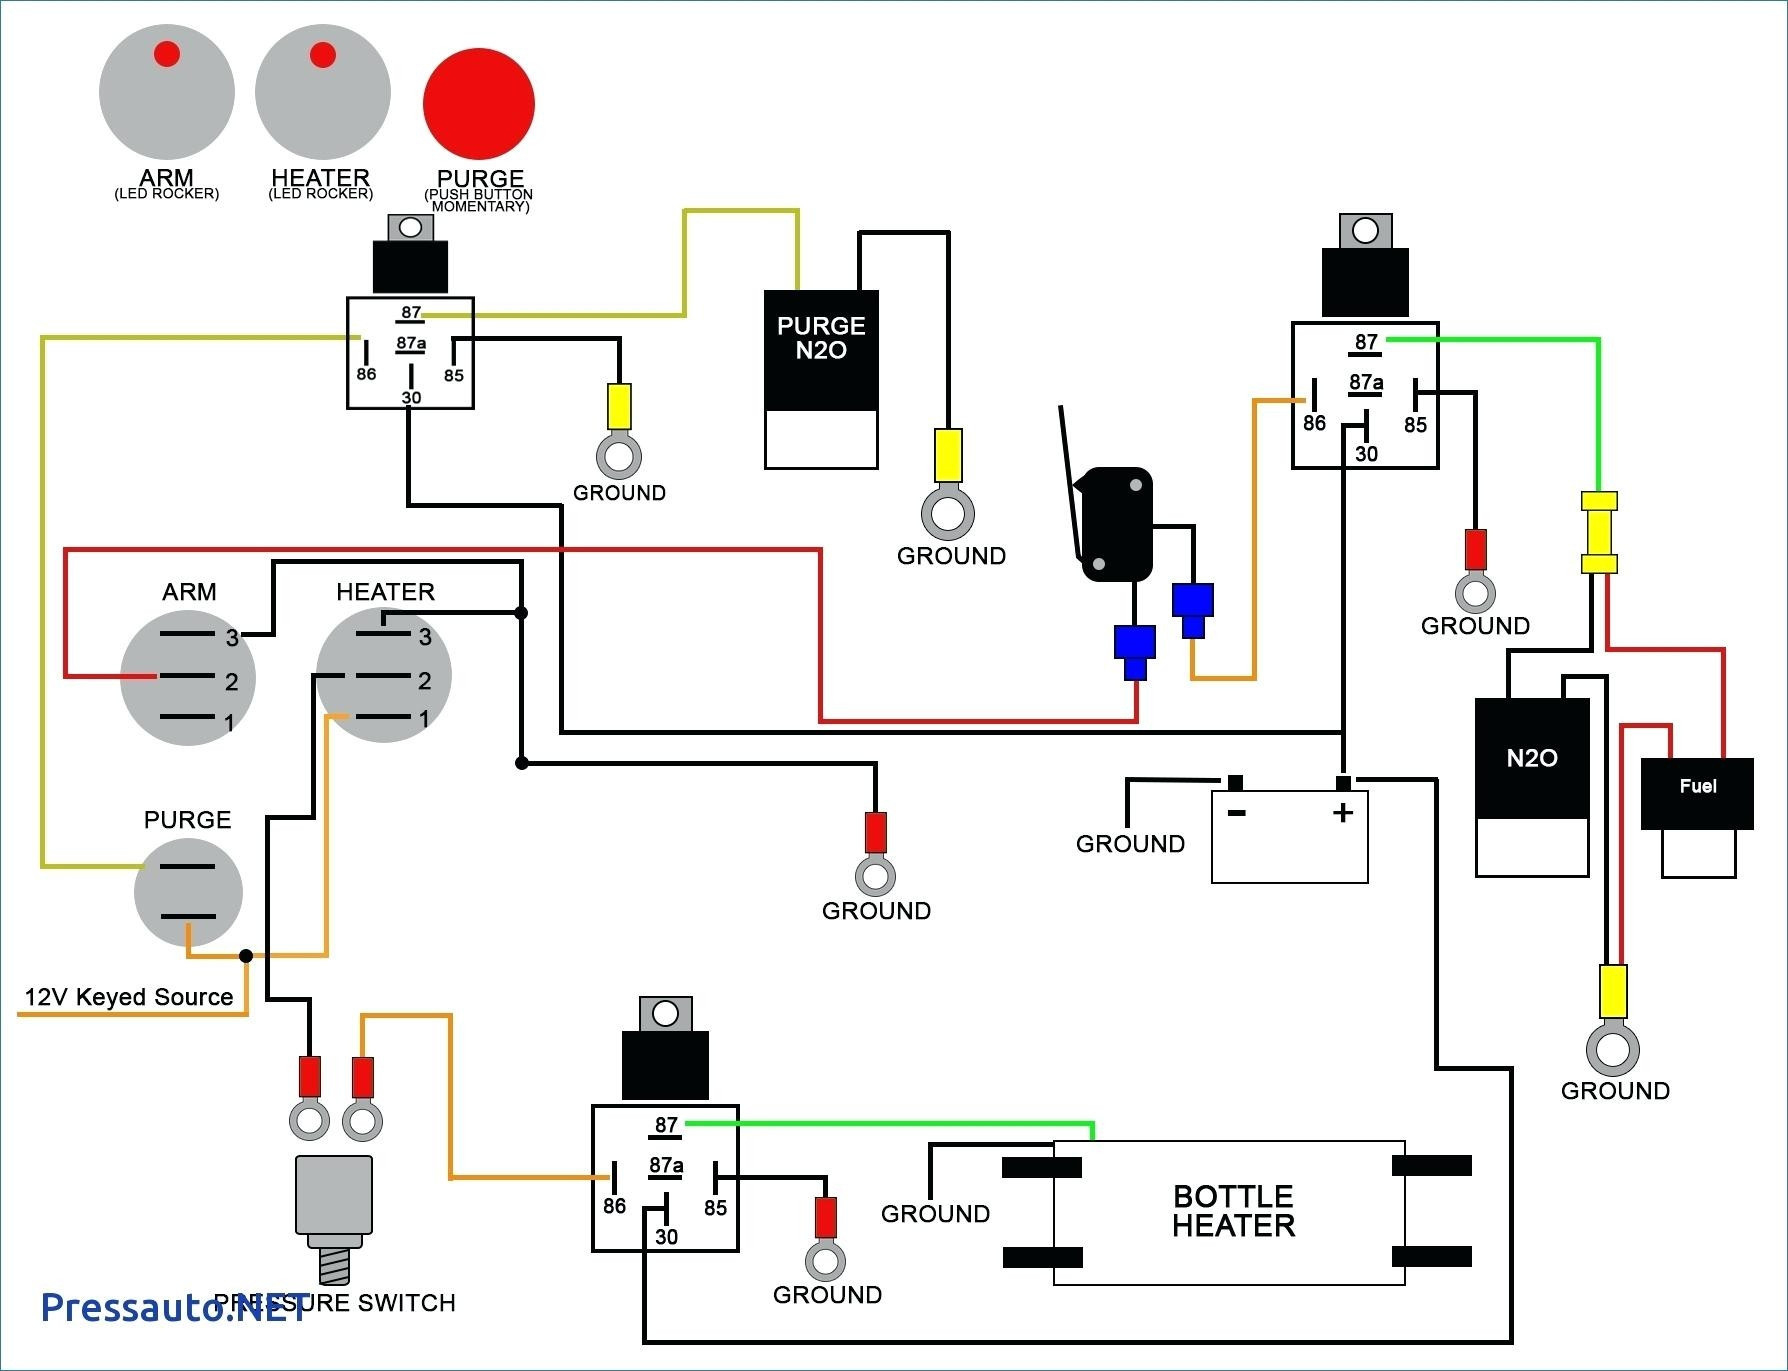 Sure Power Battery Isolator Wiring Diagram Luxury Sure Power Battery - Sure Power Battery Isolator Wiring Diagram